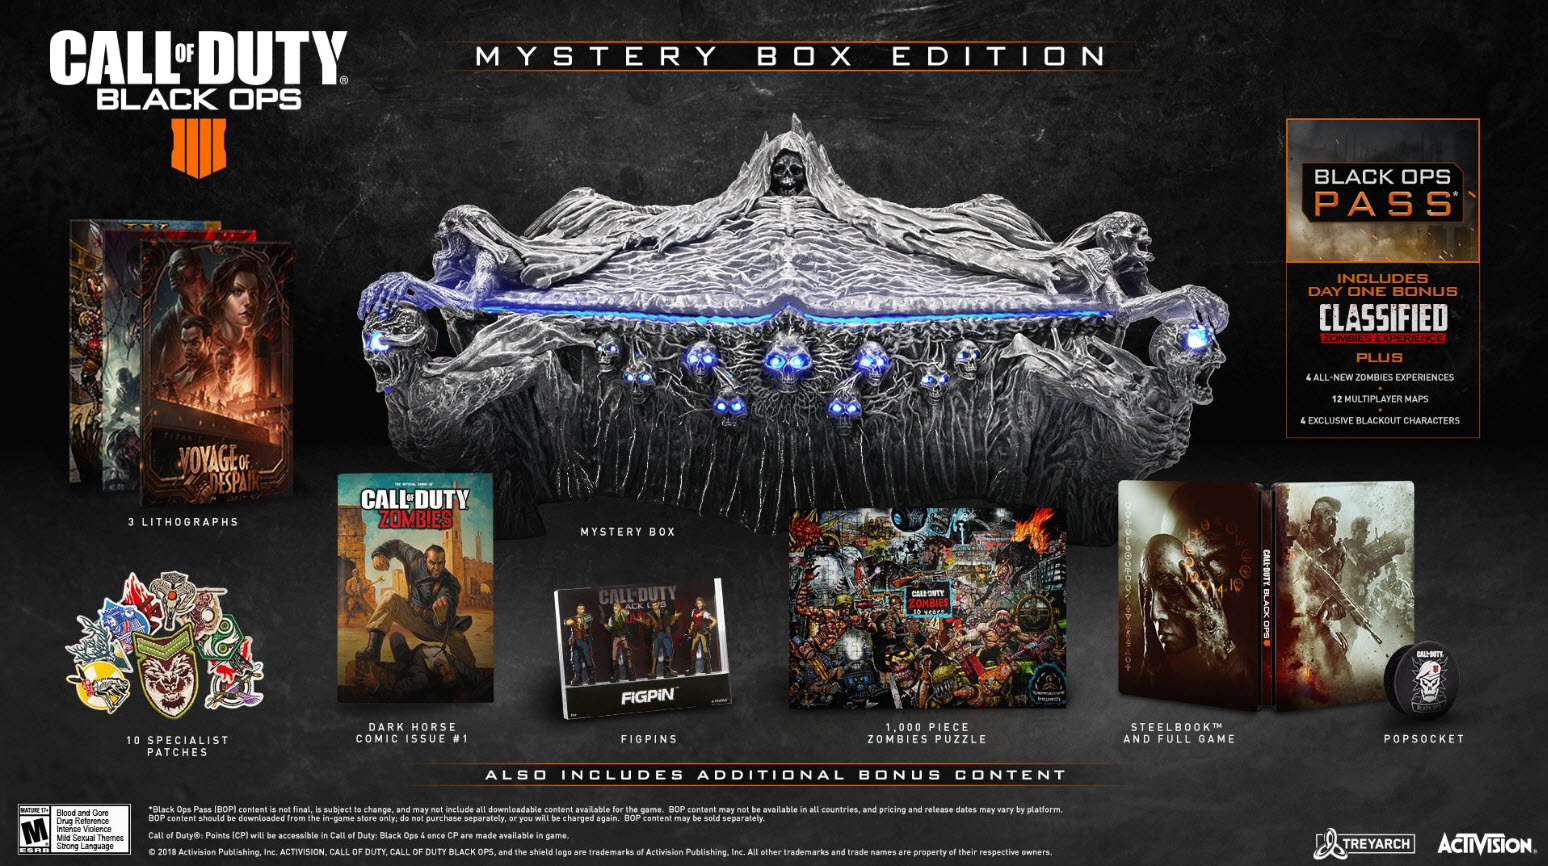 Call of Duty Black Ops 4 Blackout Mystery Box Collector's Edition